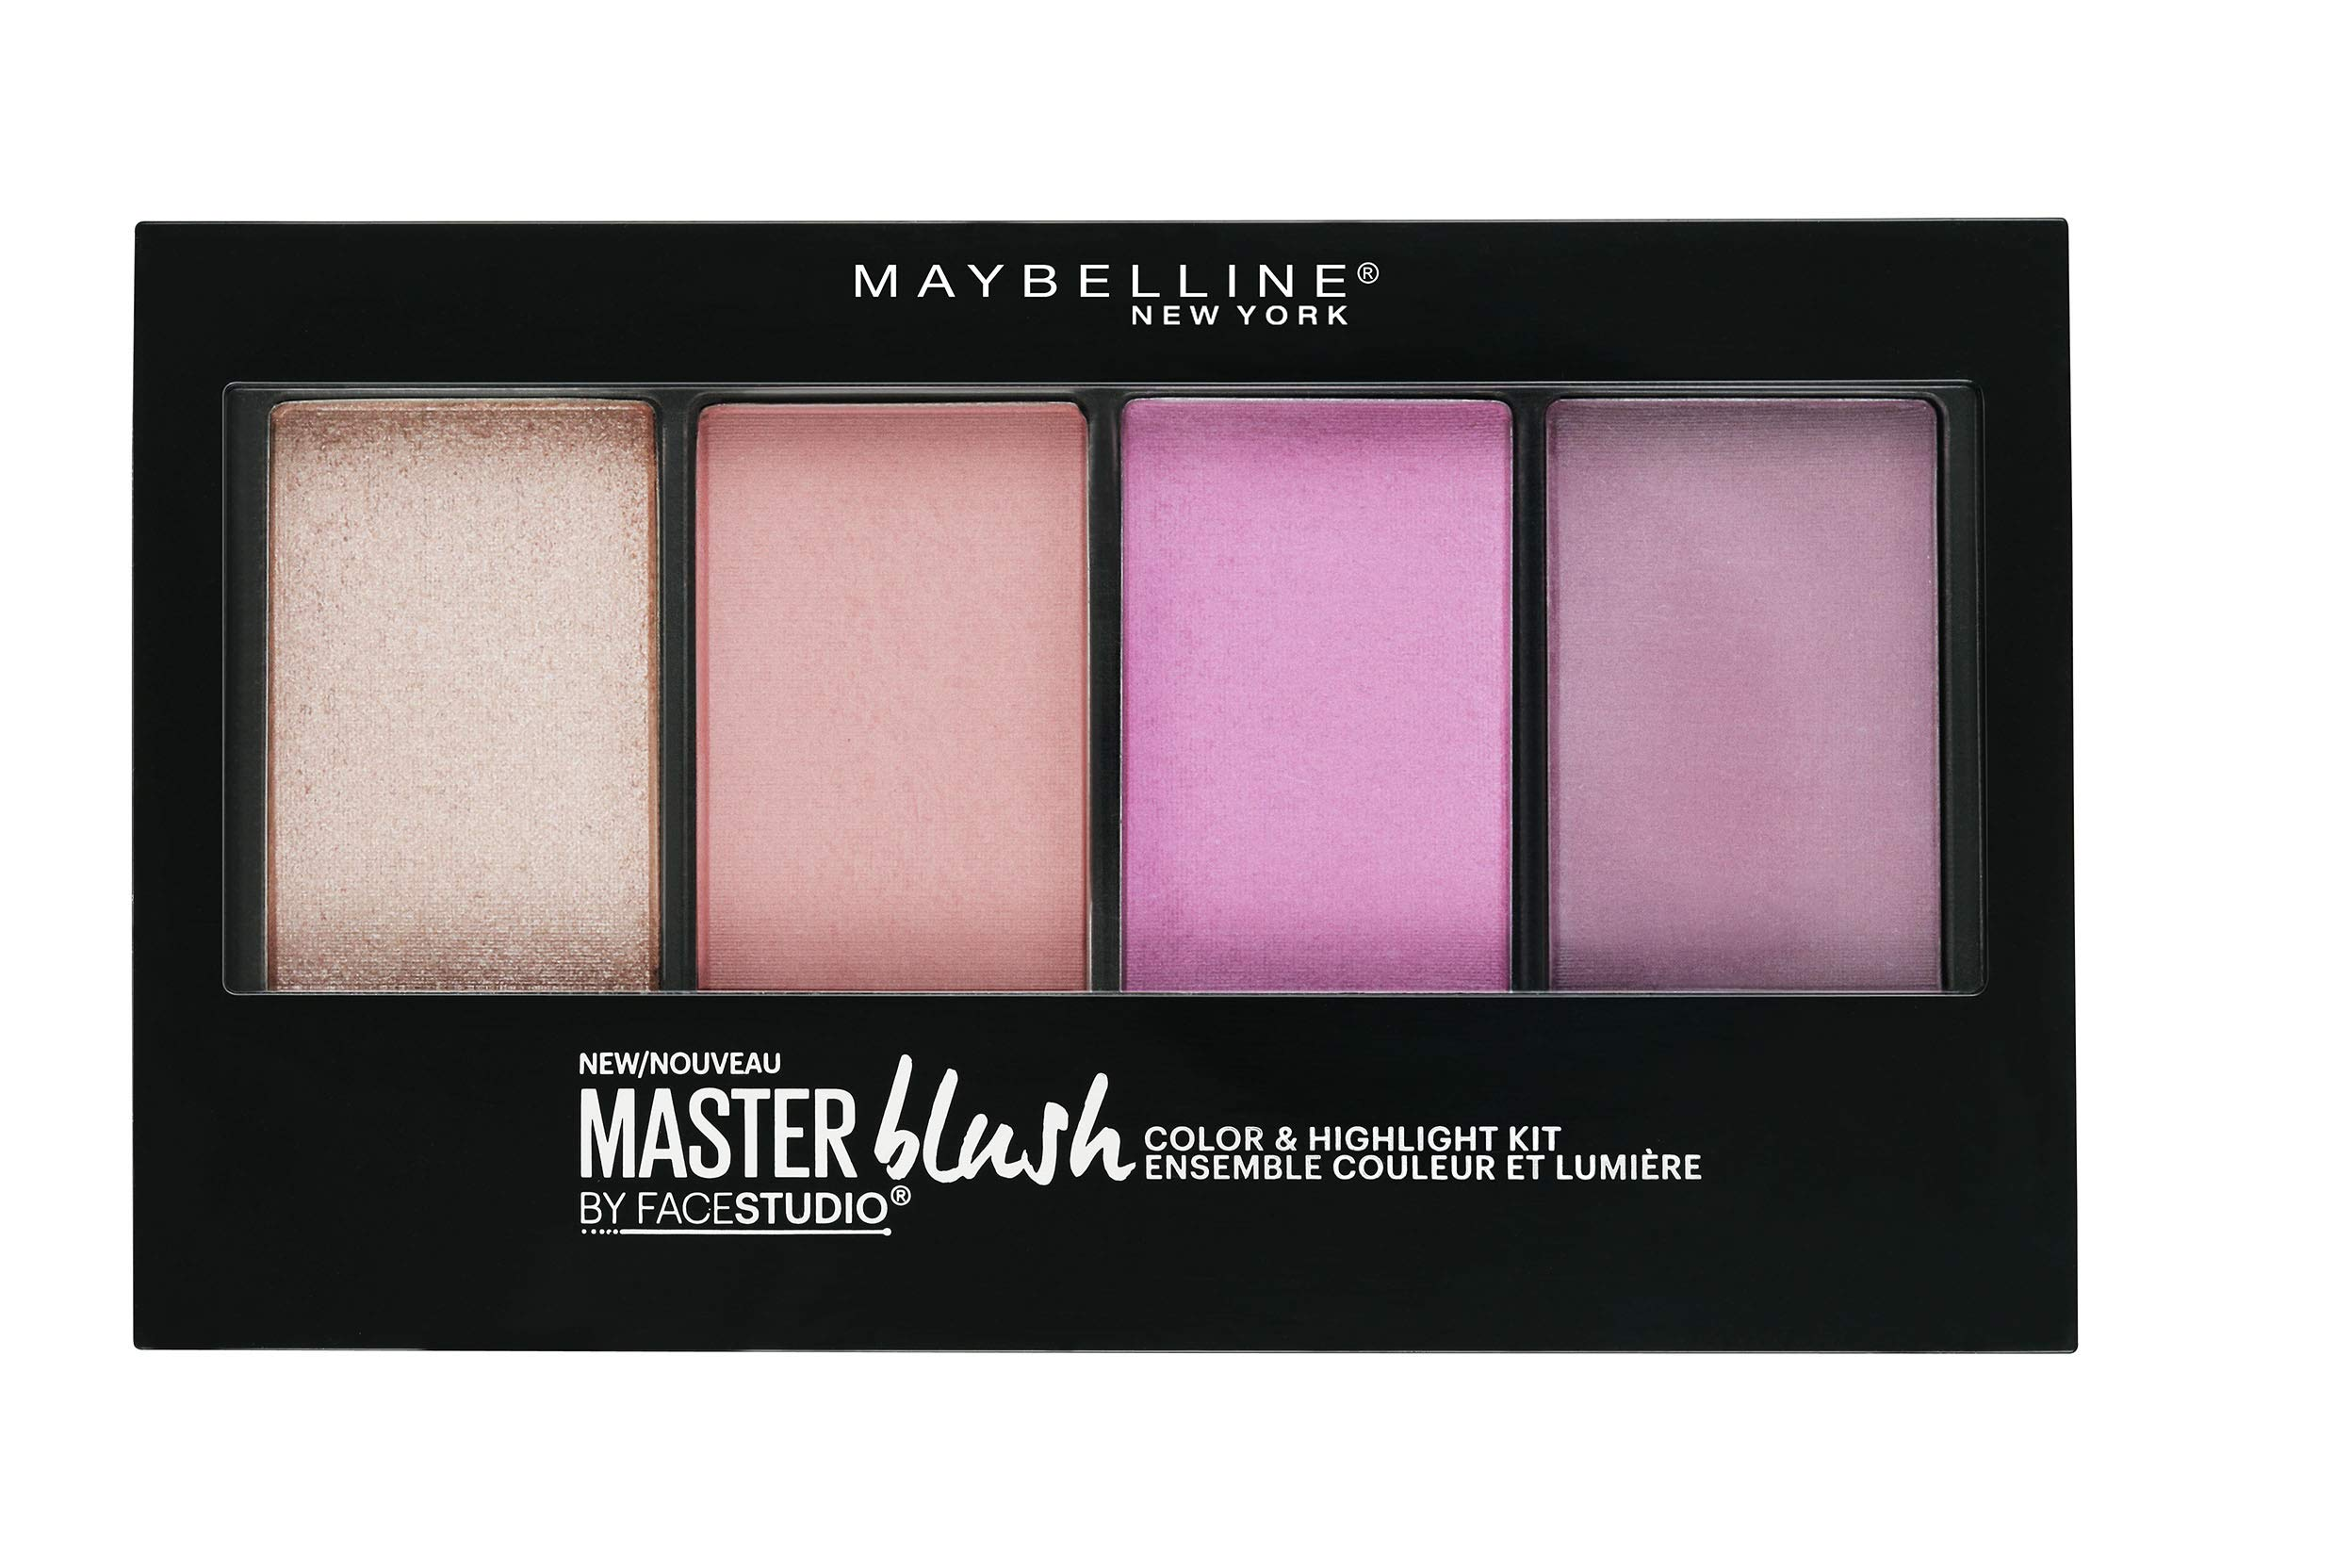 Maybelline New York Facestudio Master Blush Color & Highlight Kit, 0.47 oz.